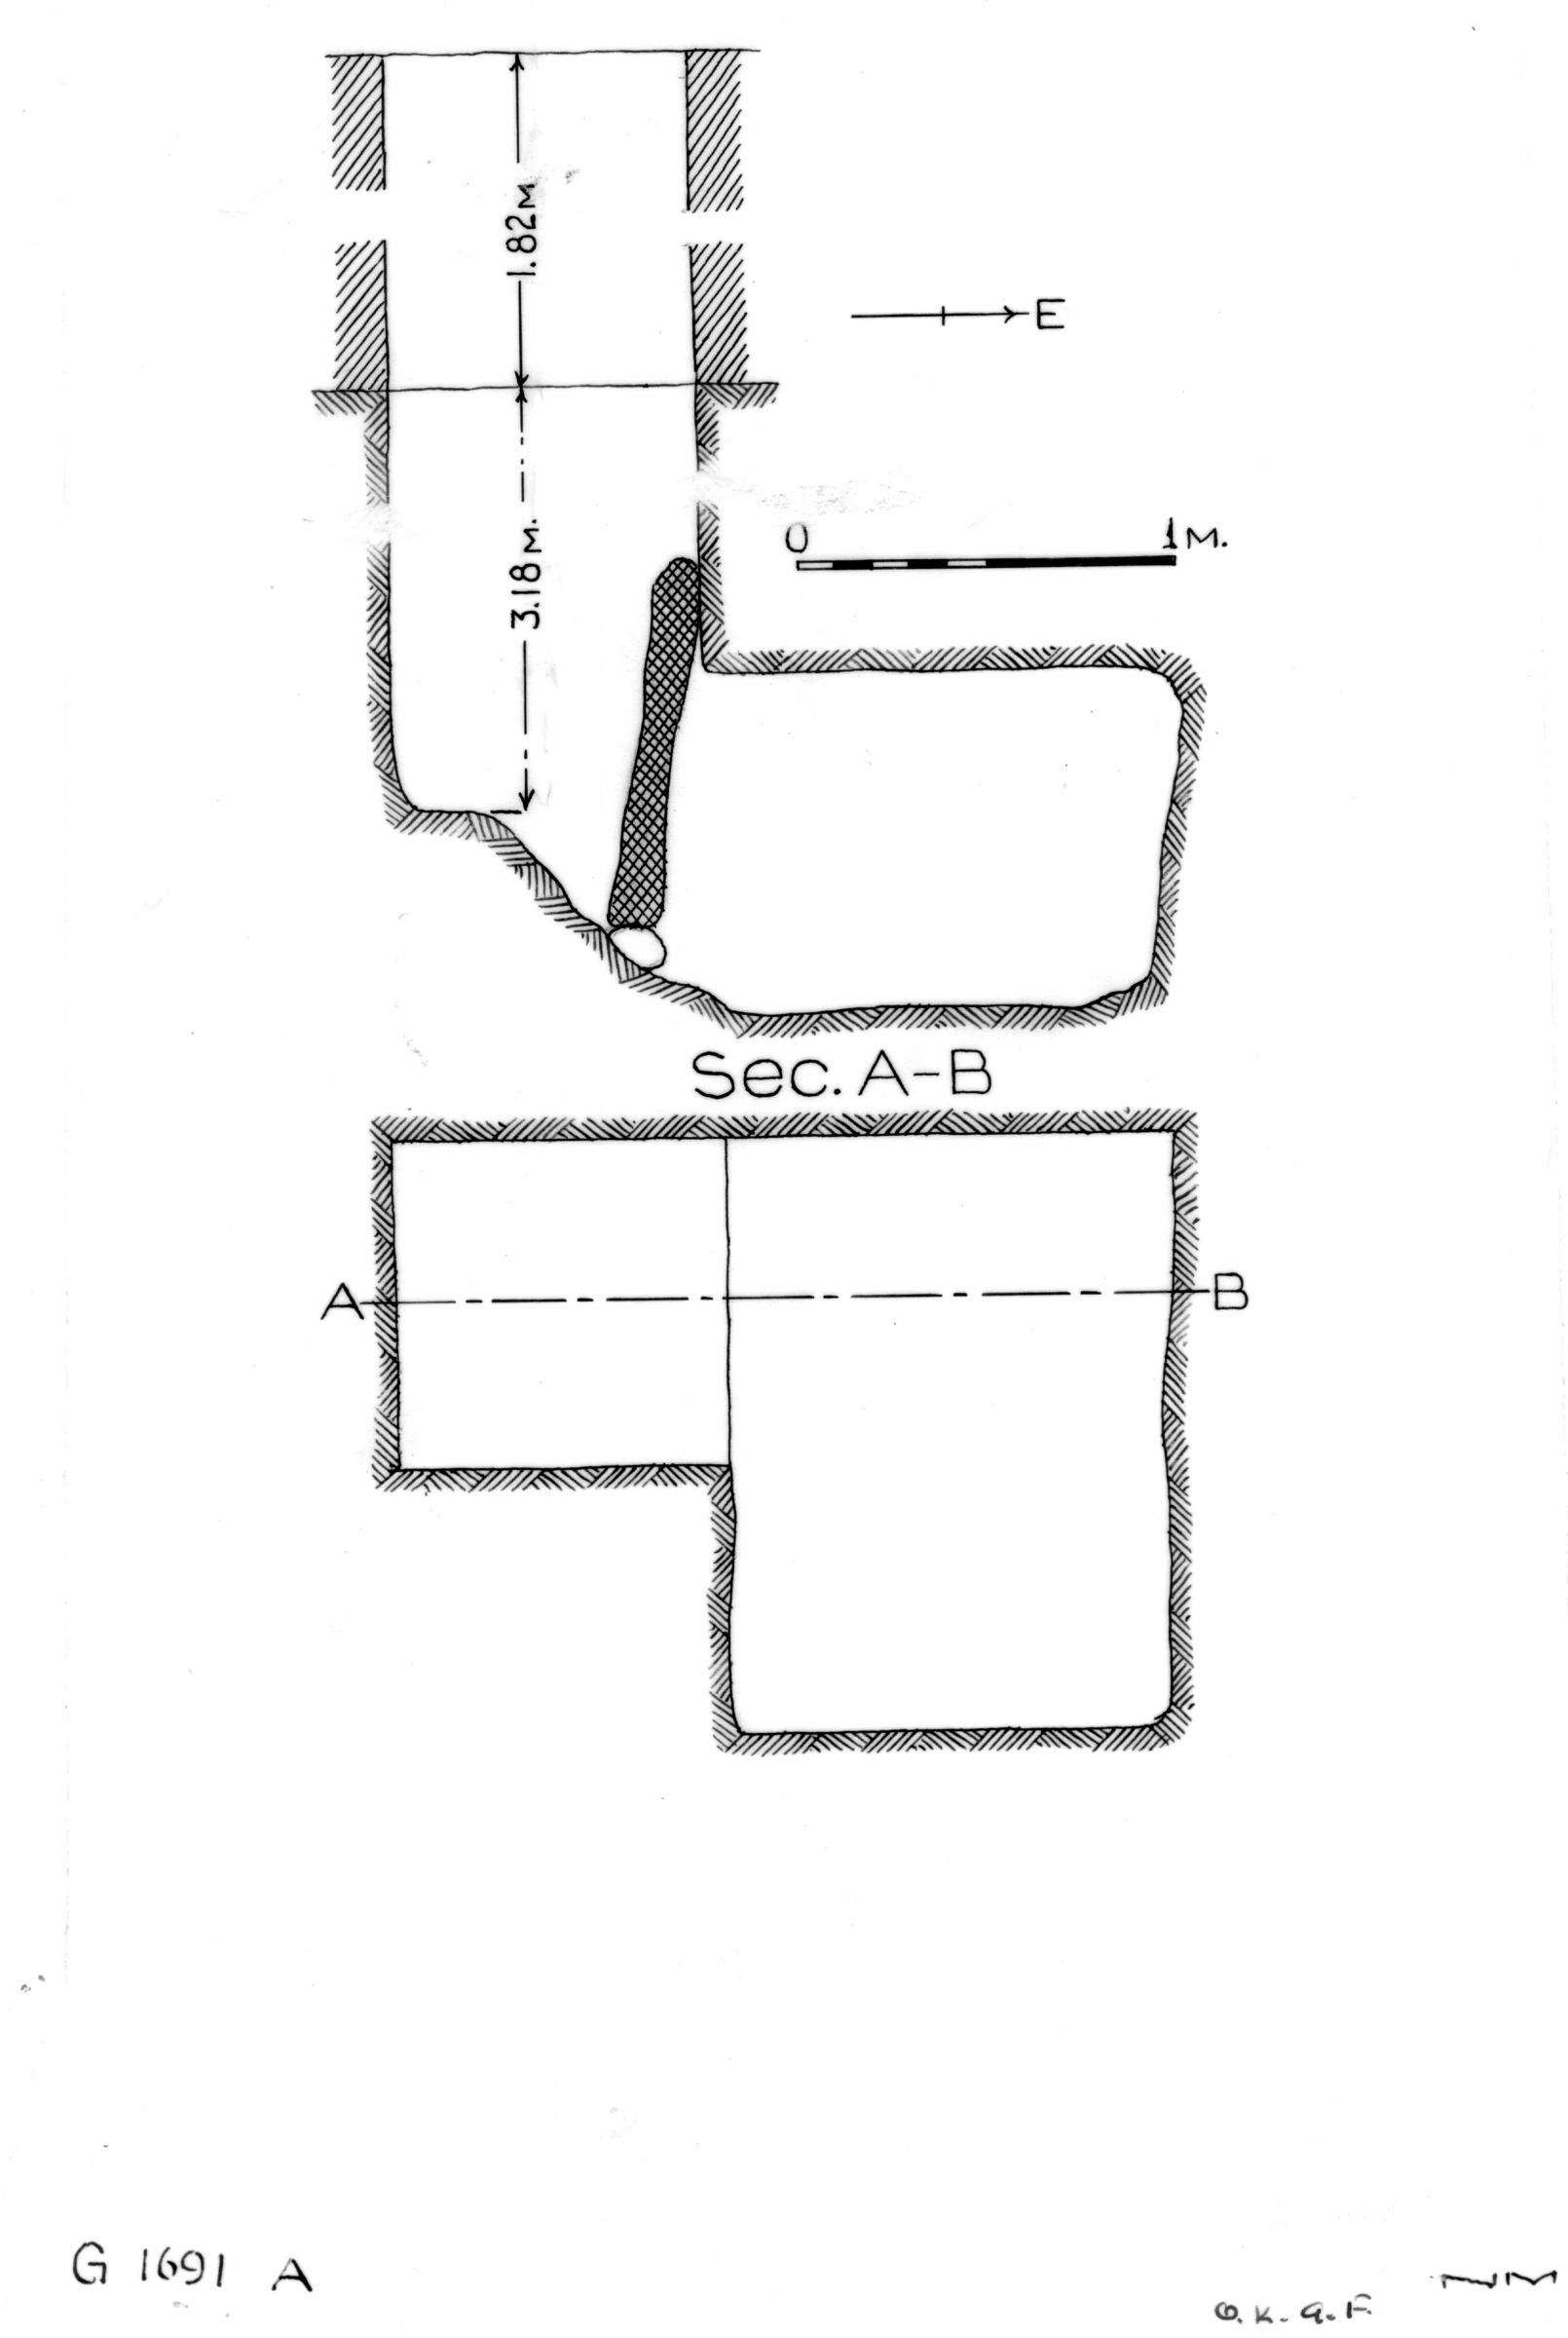 Maps and plans: G 1691, Shaft A